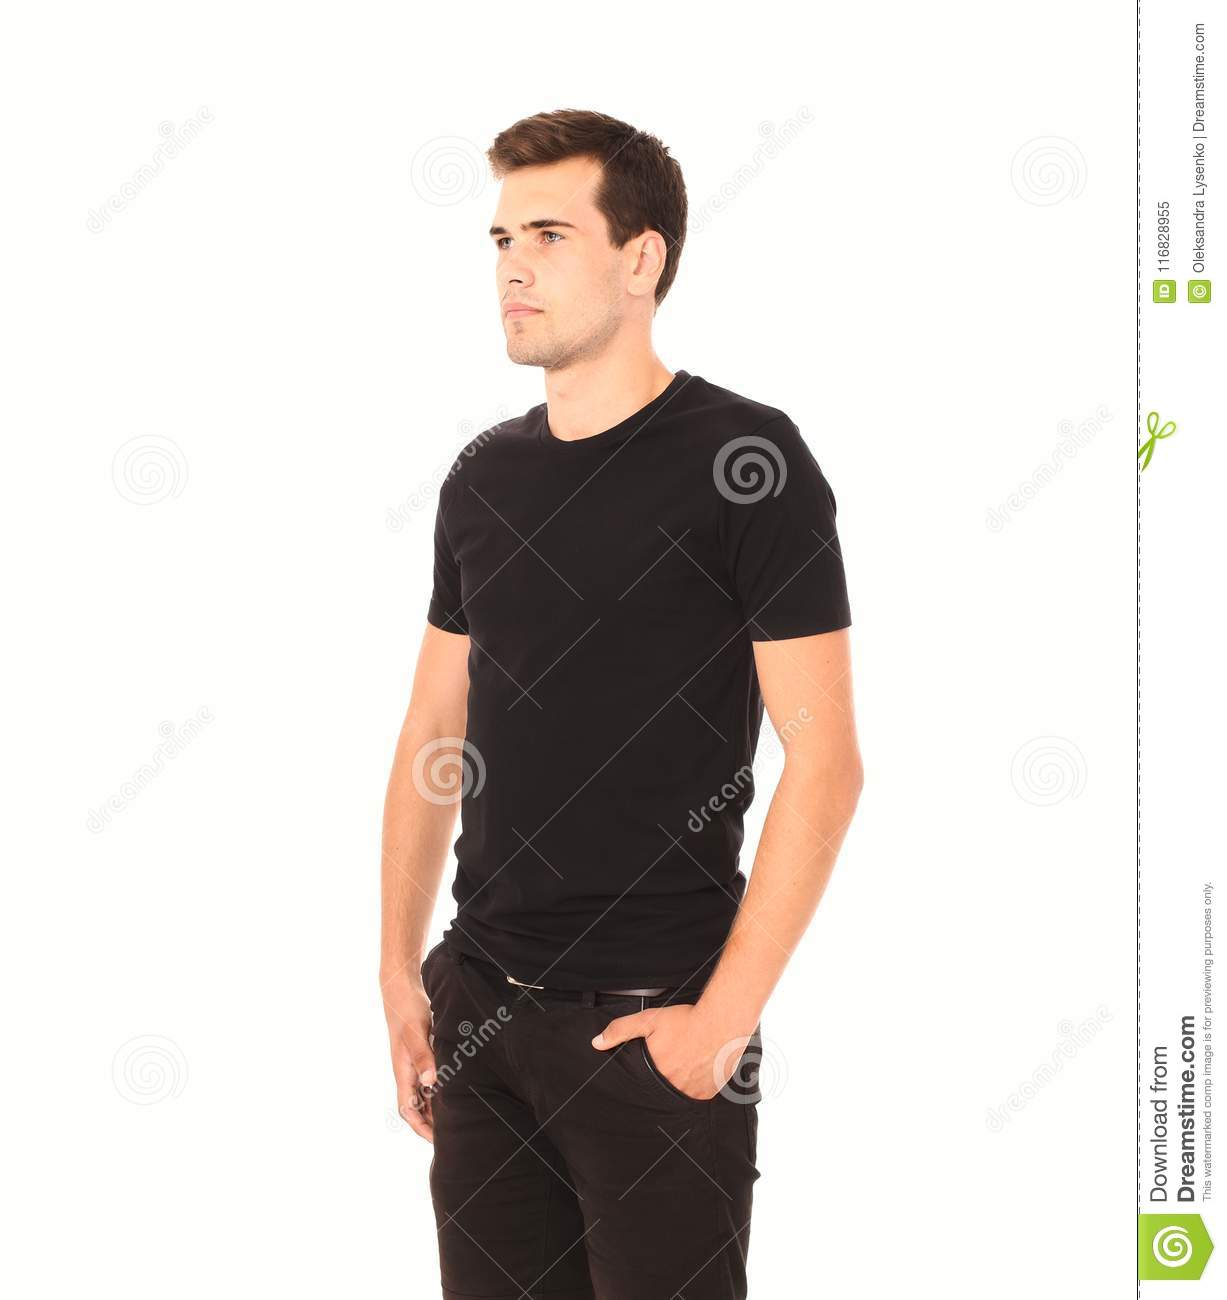 b08e1f9a0444 Smart thinking young man in black template blank shirt isolated on white. Copy  space. Mock up. Summer t-shirt clothes.